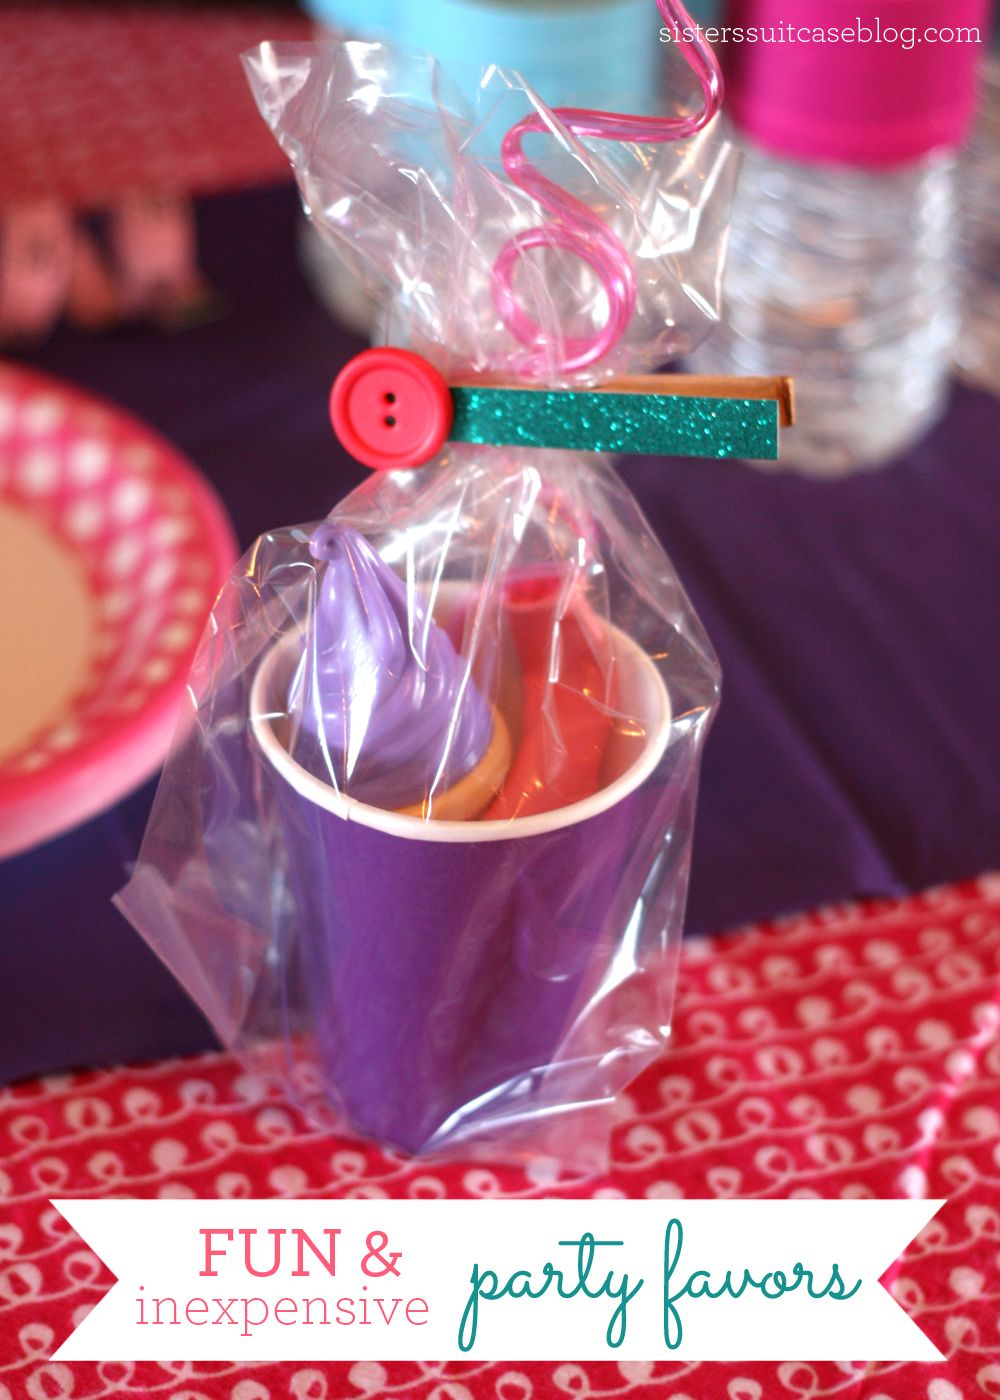 Kid Party Favors On Pinterest